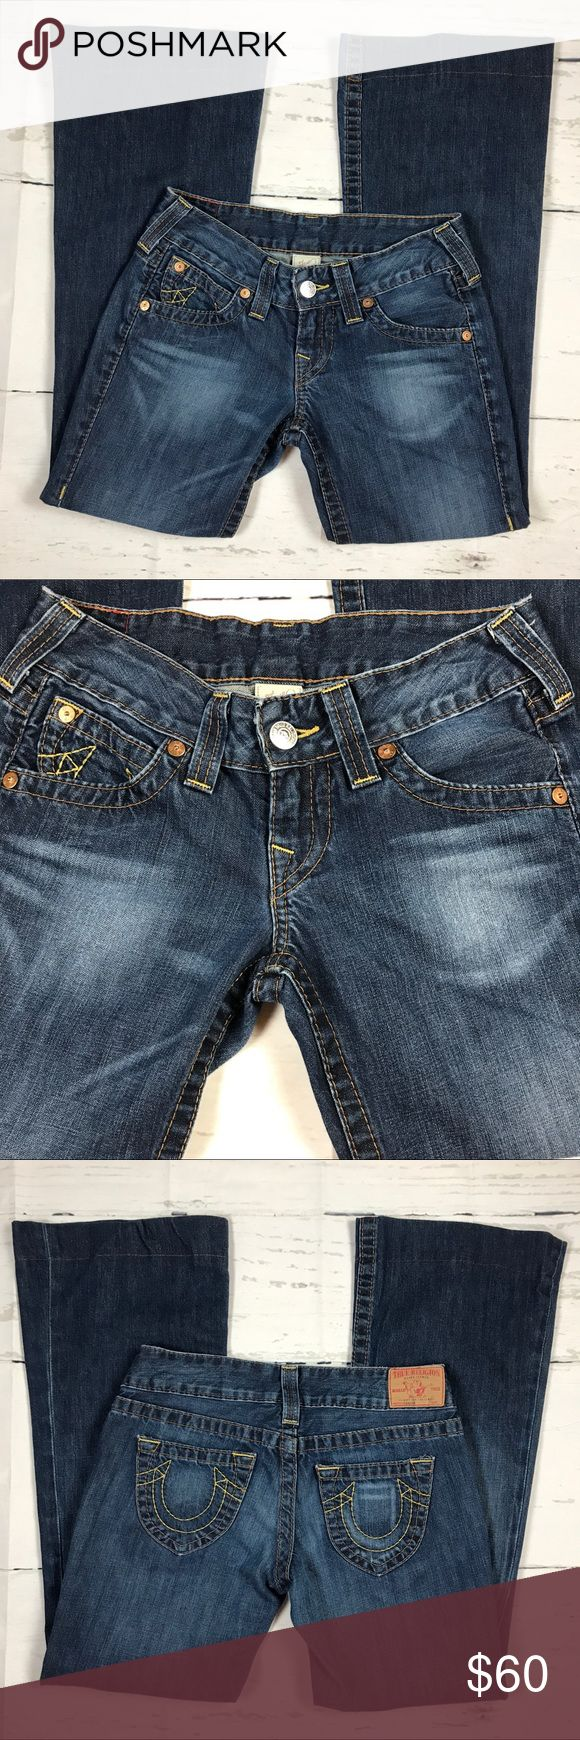 "True Religion Candice Jeans Sz 27 Model WB82358E4J True Religion Women's Jeans Size 27 ""Candice"" New Model WB82358E4J Made in U.S.A  Brand: True Religion Color: Blue Tag Size: 27 on the tag label, (Real sizes 30/29) Material: 100% Cotton Condition: This jean hem had been alter do to the fit and I'll provide the measurements length. Condition of the jean is good.  Measurements Waist: 15"" x2 = 30"" Inseam: 29"" Rise: 7 1/2"" Leg Opening: 10"" Length: 37 1/2"" True Religion Jeans Flare & Wide Leg"